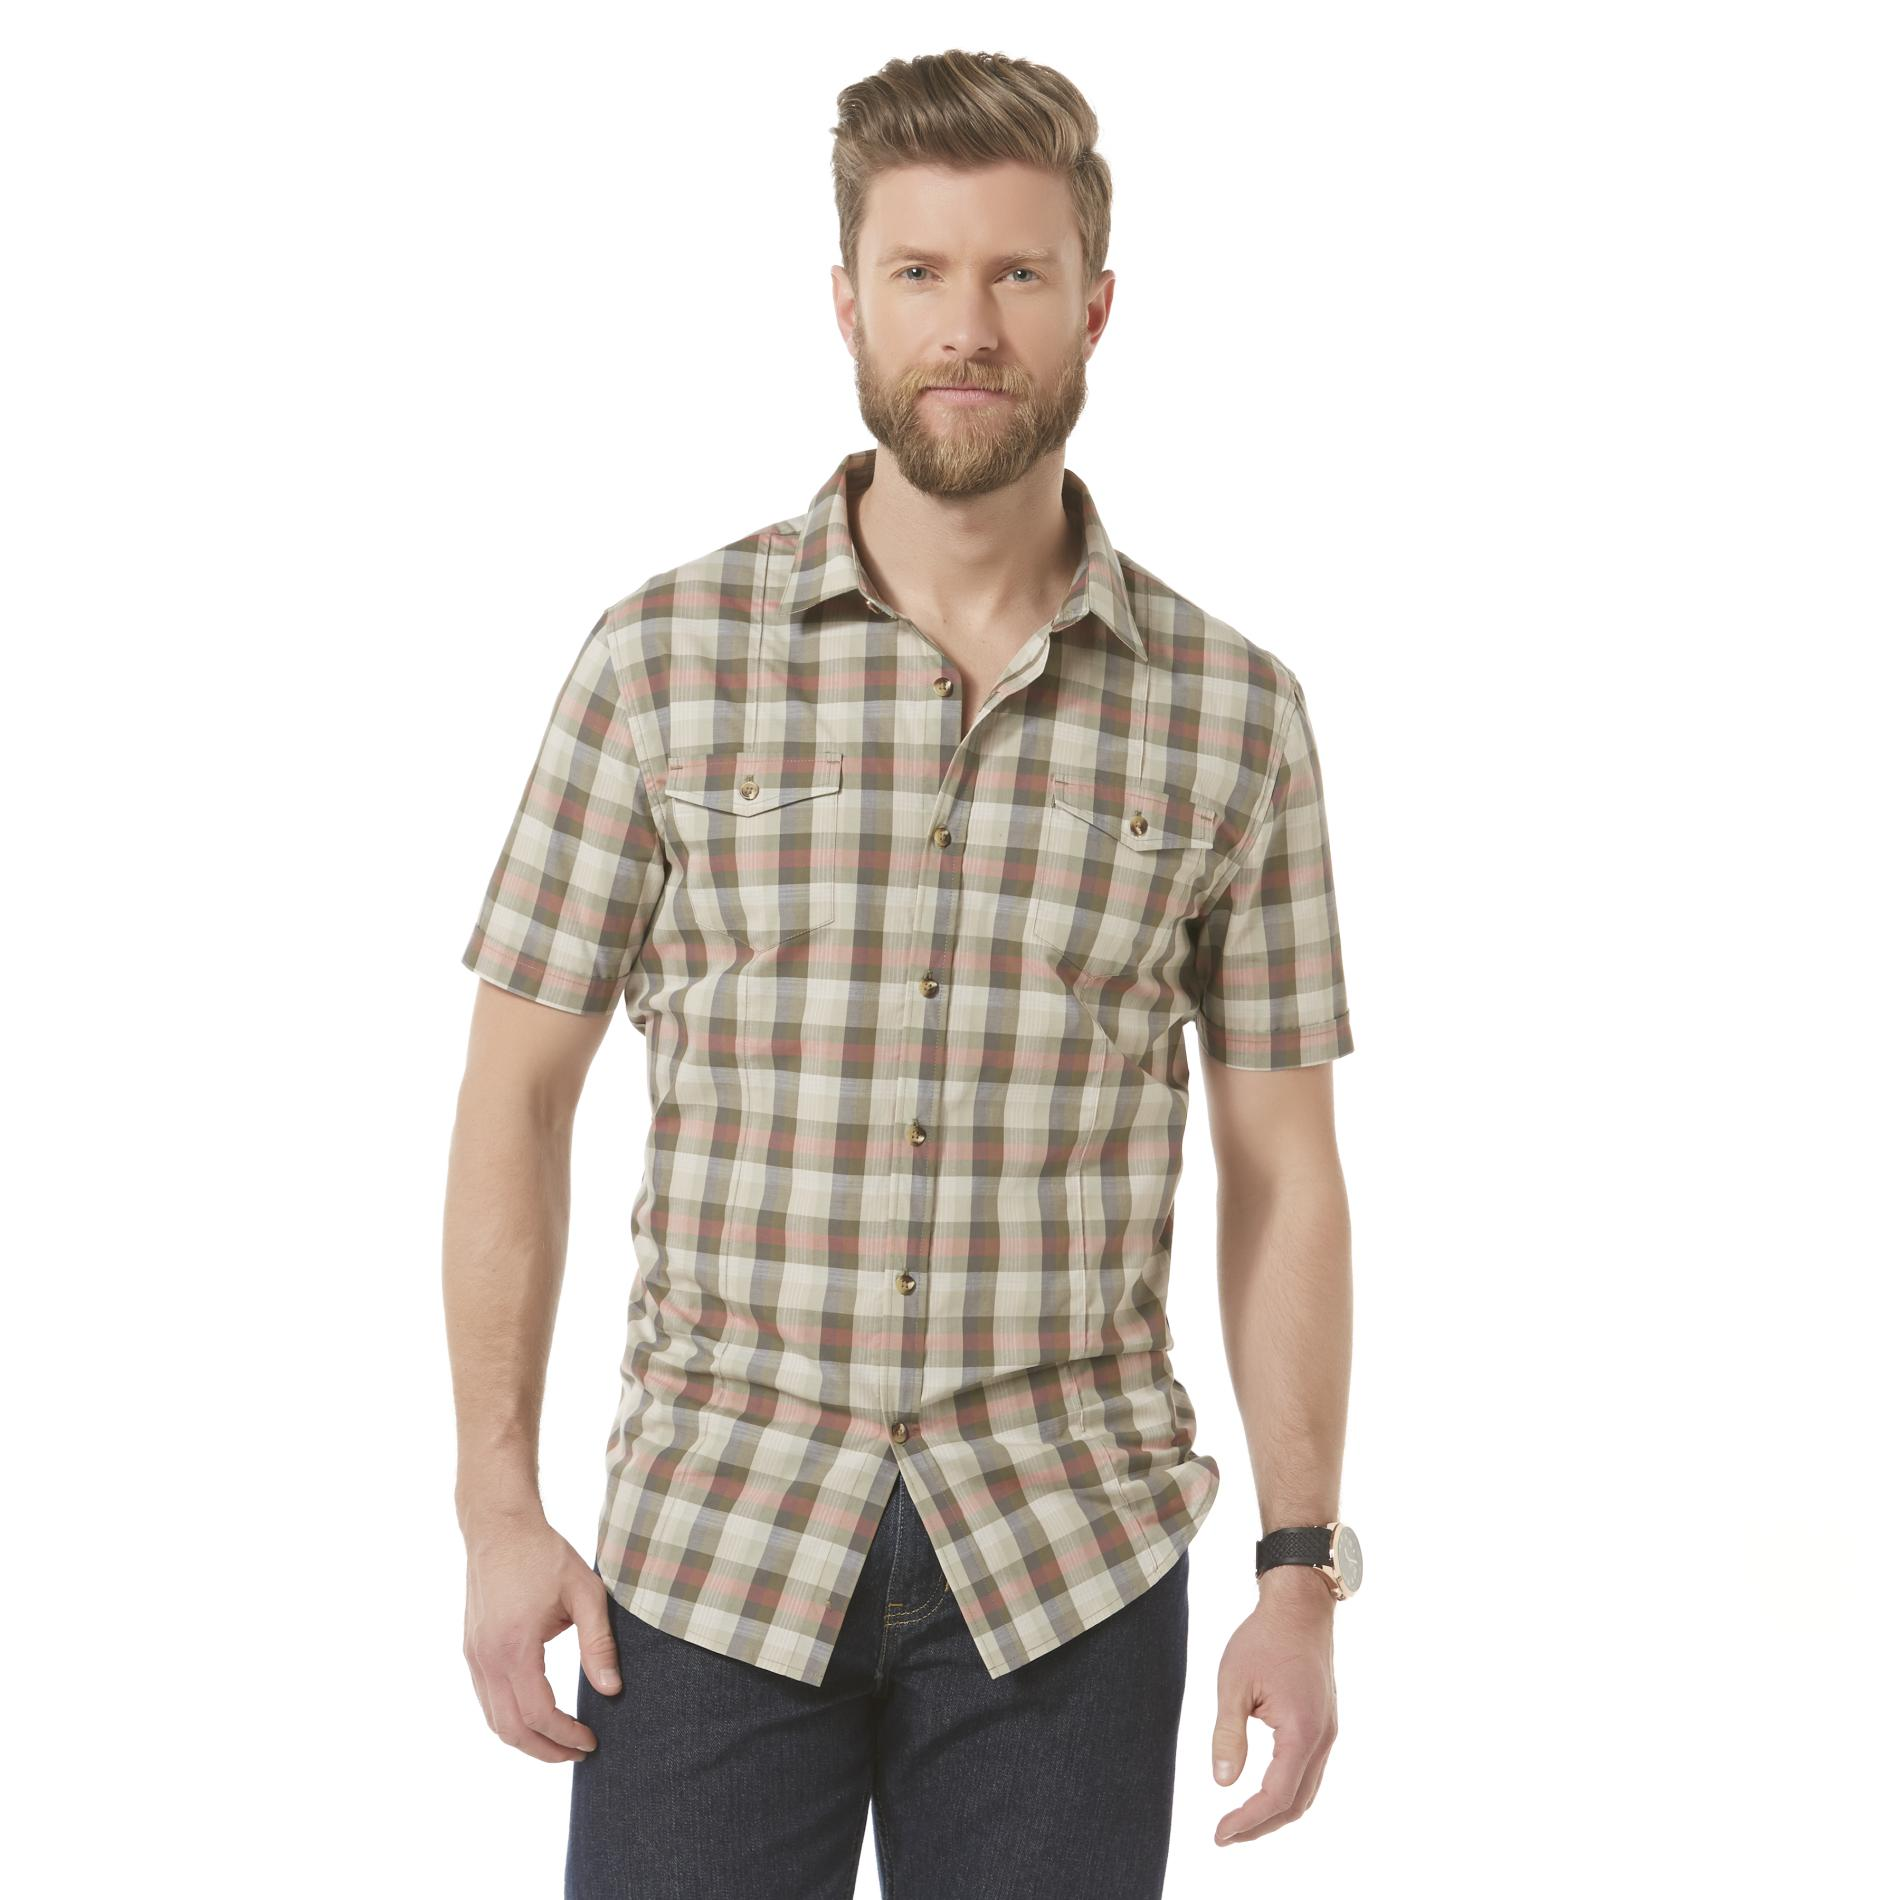 Structure Men's Short-Sleeve Casual Shirt - Plaid